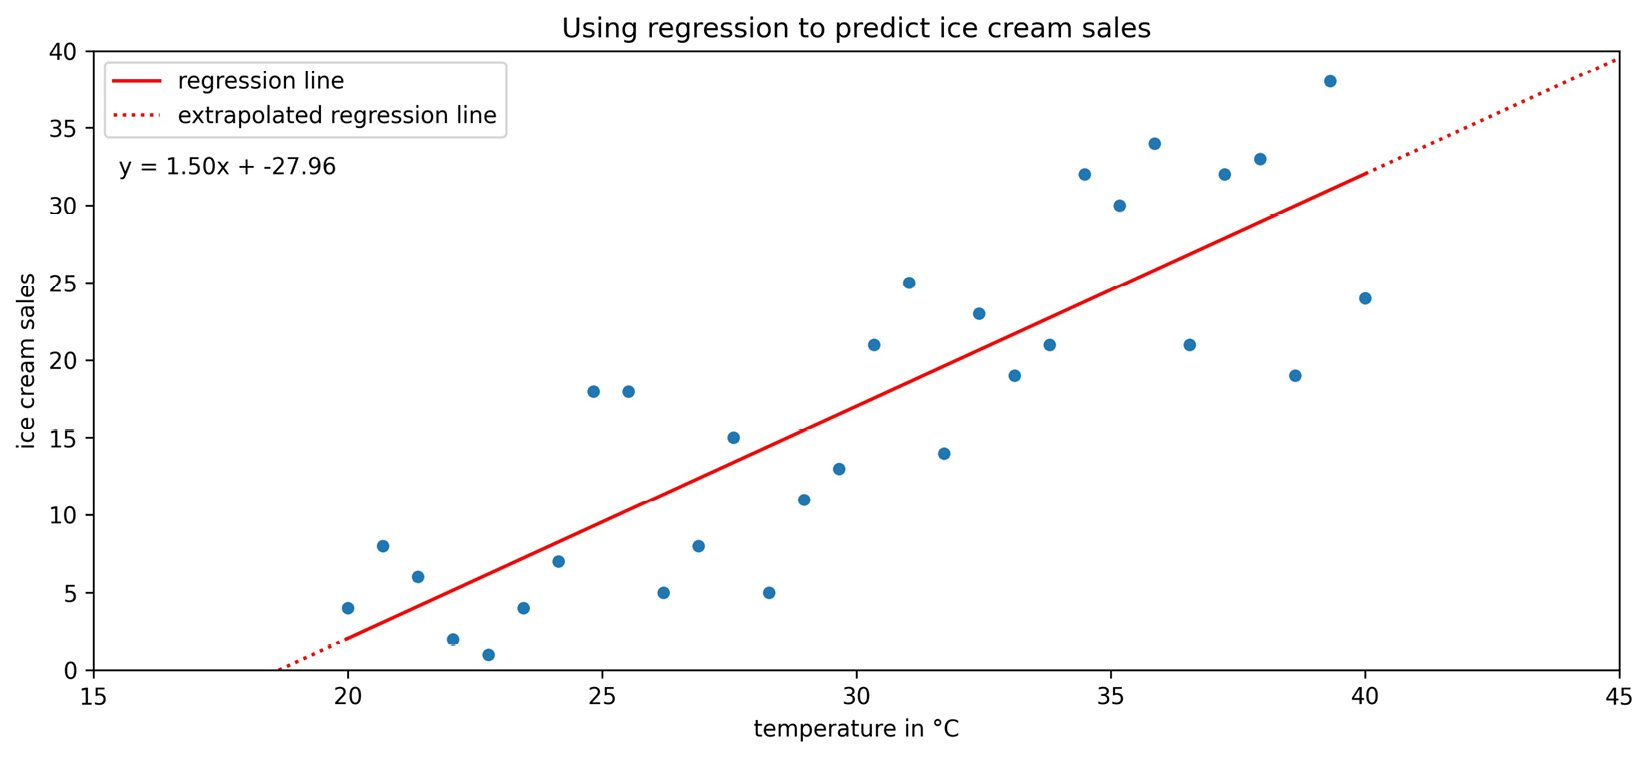 Figure 1.16 – Fitting a line to the ice cream sales data